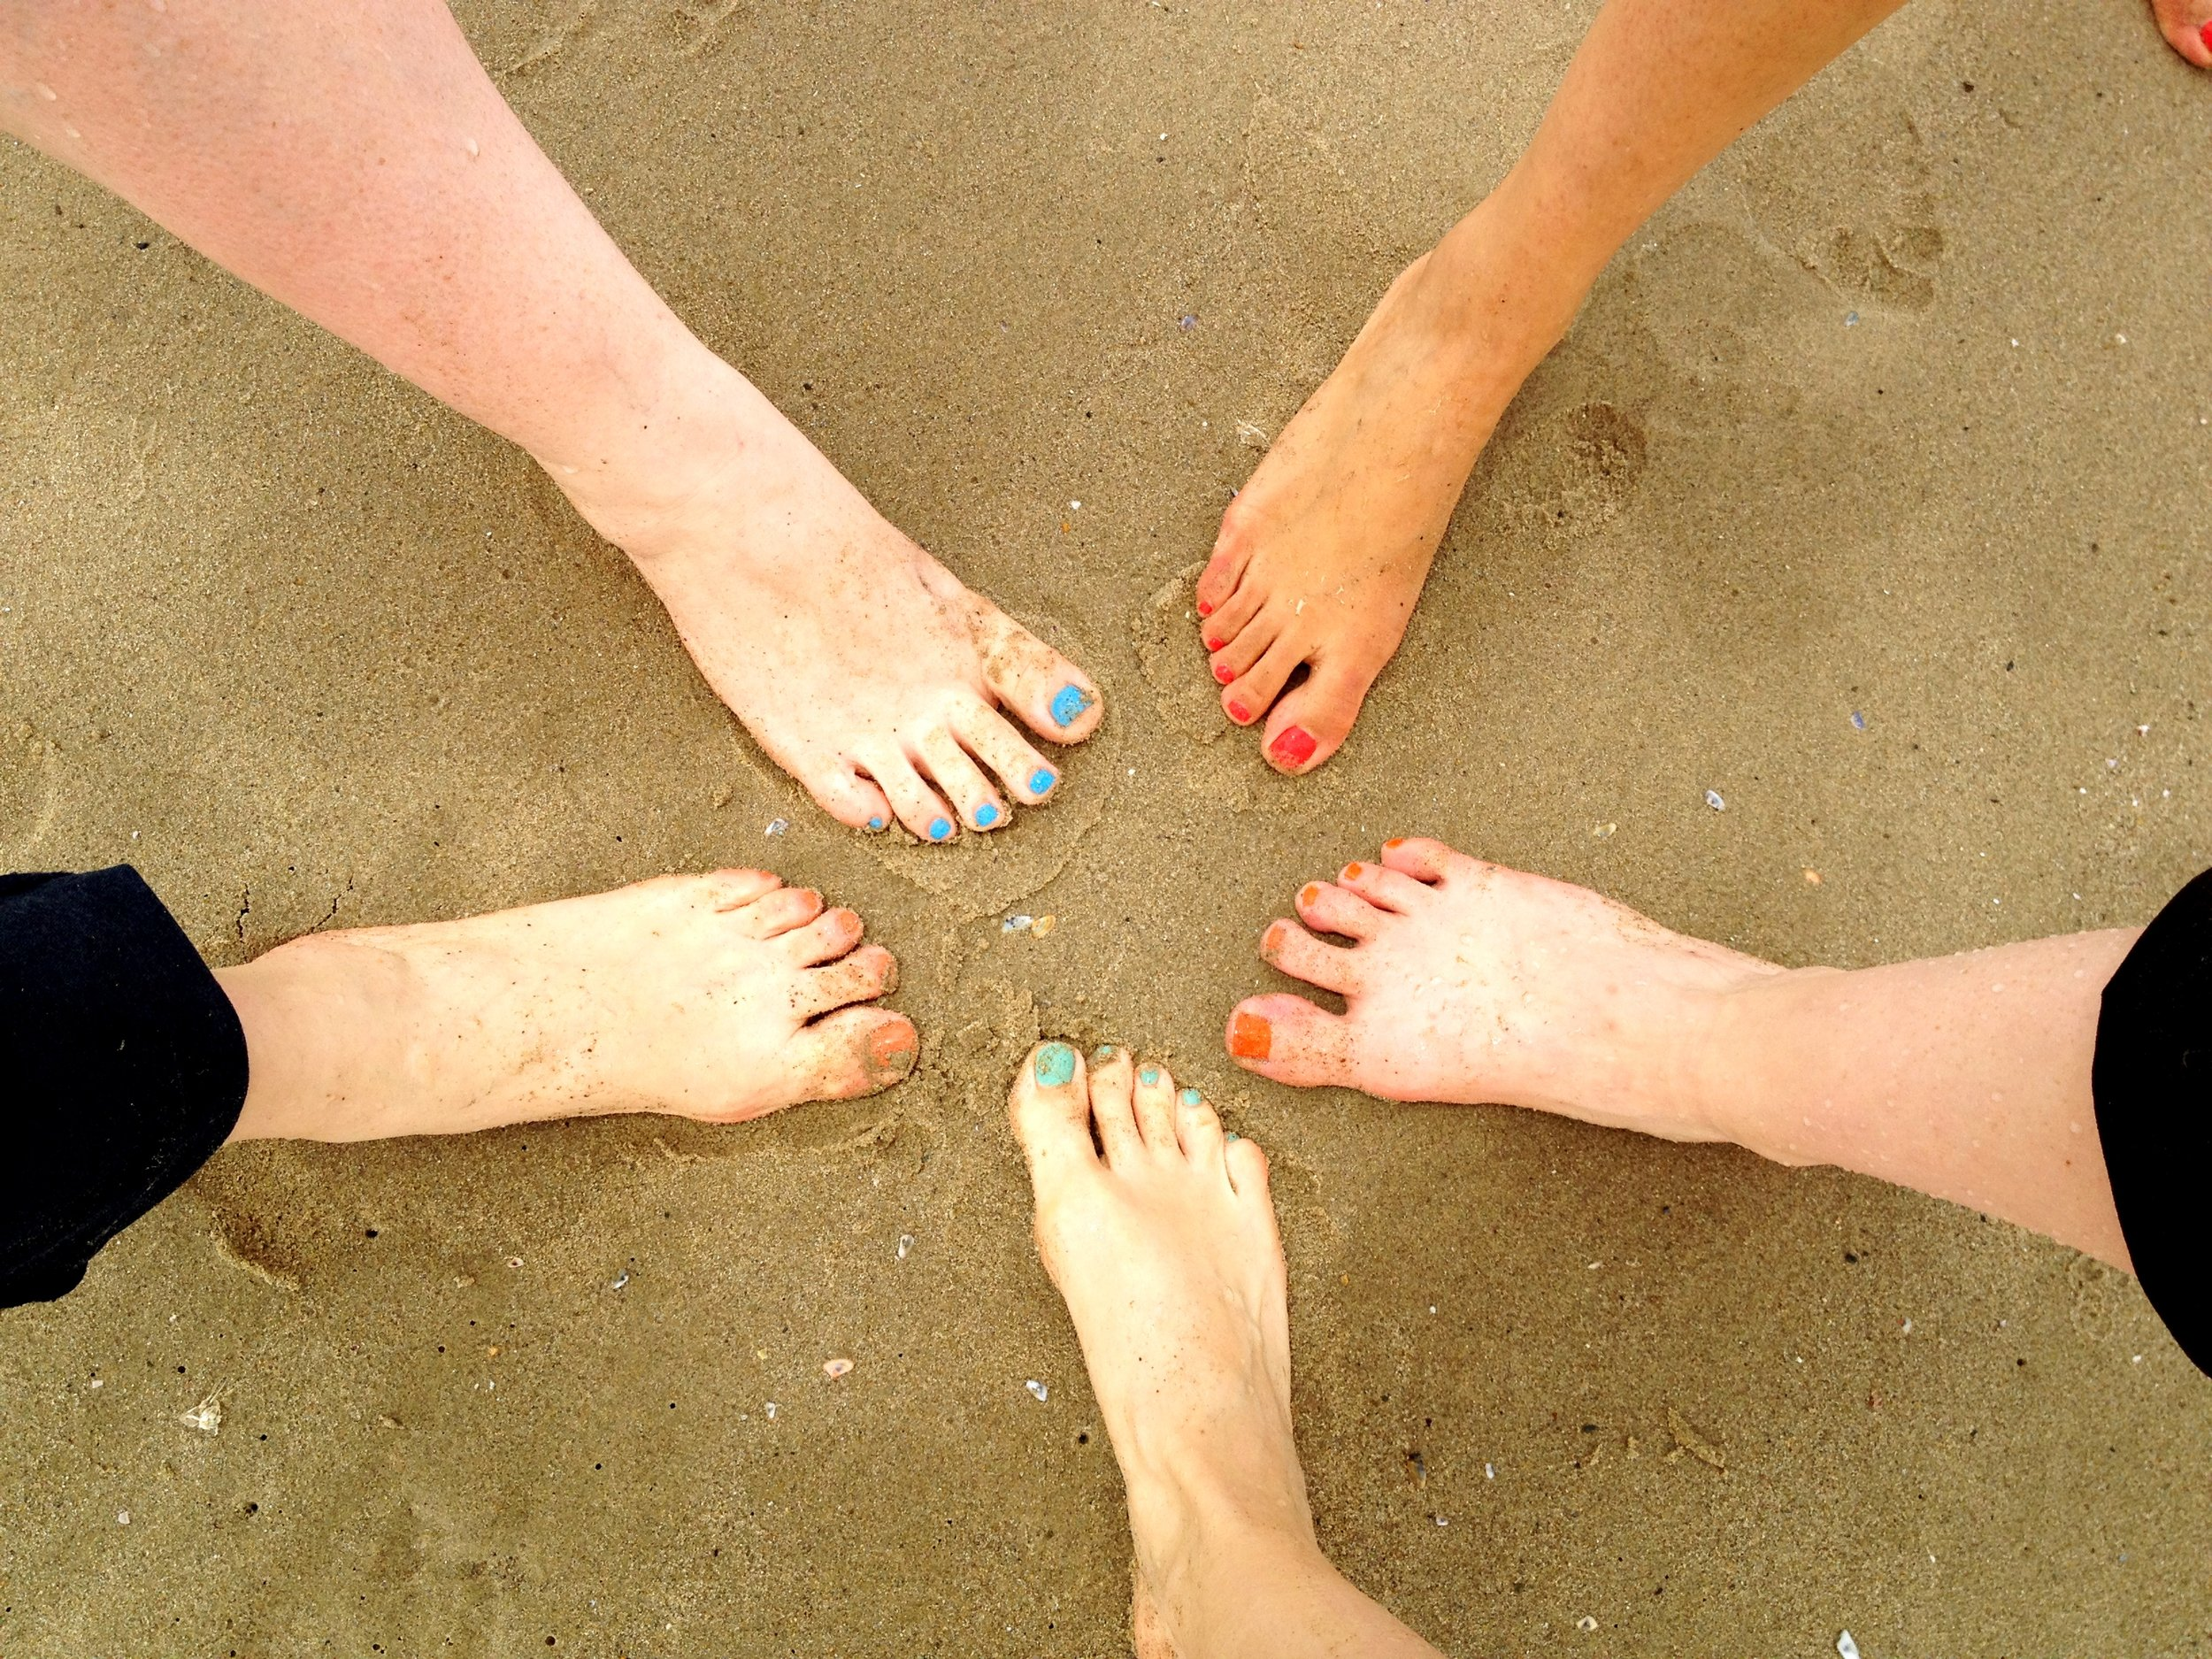 Yes, we did a girlfriend feet picture on the beach. You would have too!